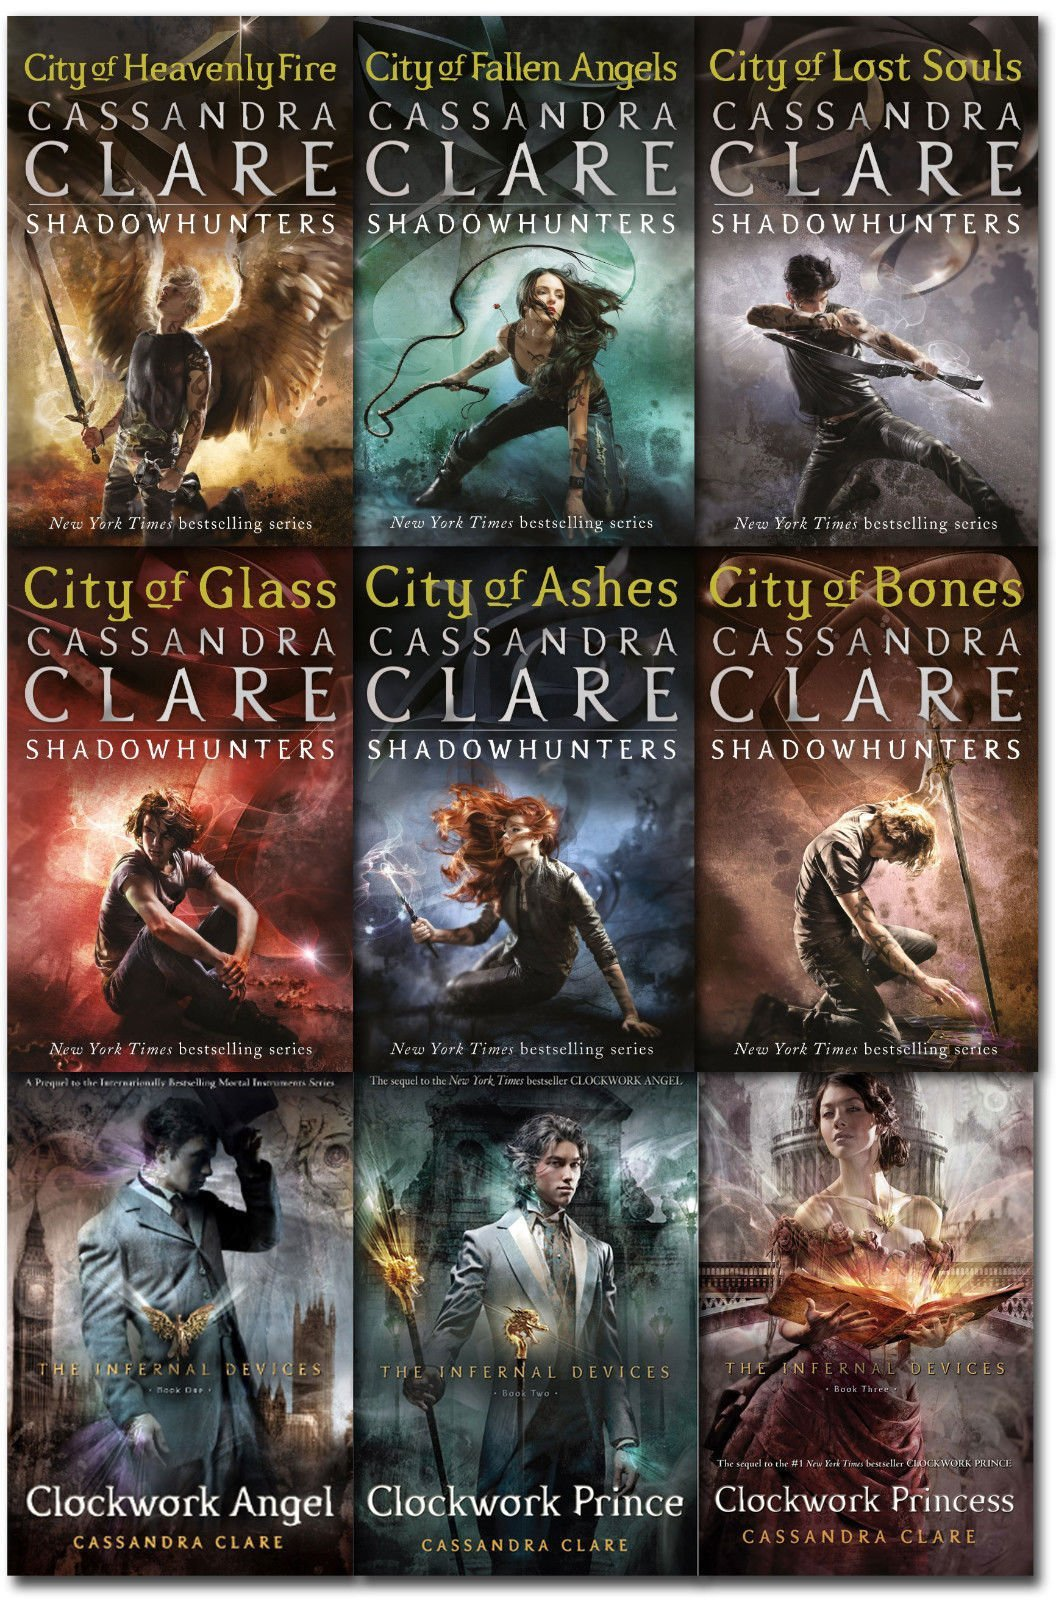 Cassandra Clare Mortal Instruments & Infernal Devices Collection 9 Books  Set Pack: Amazon.co.uk: Cassandra Clare: 9783200330078: Books